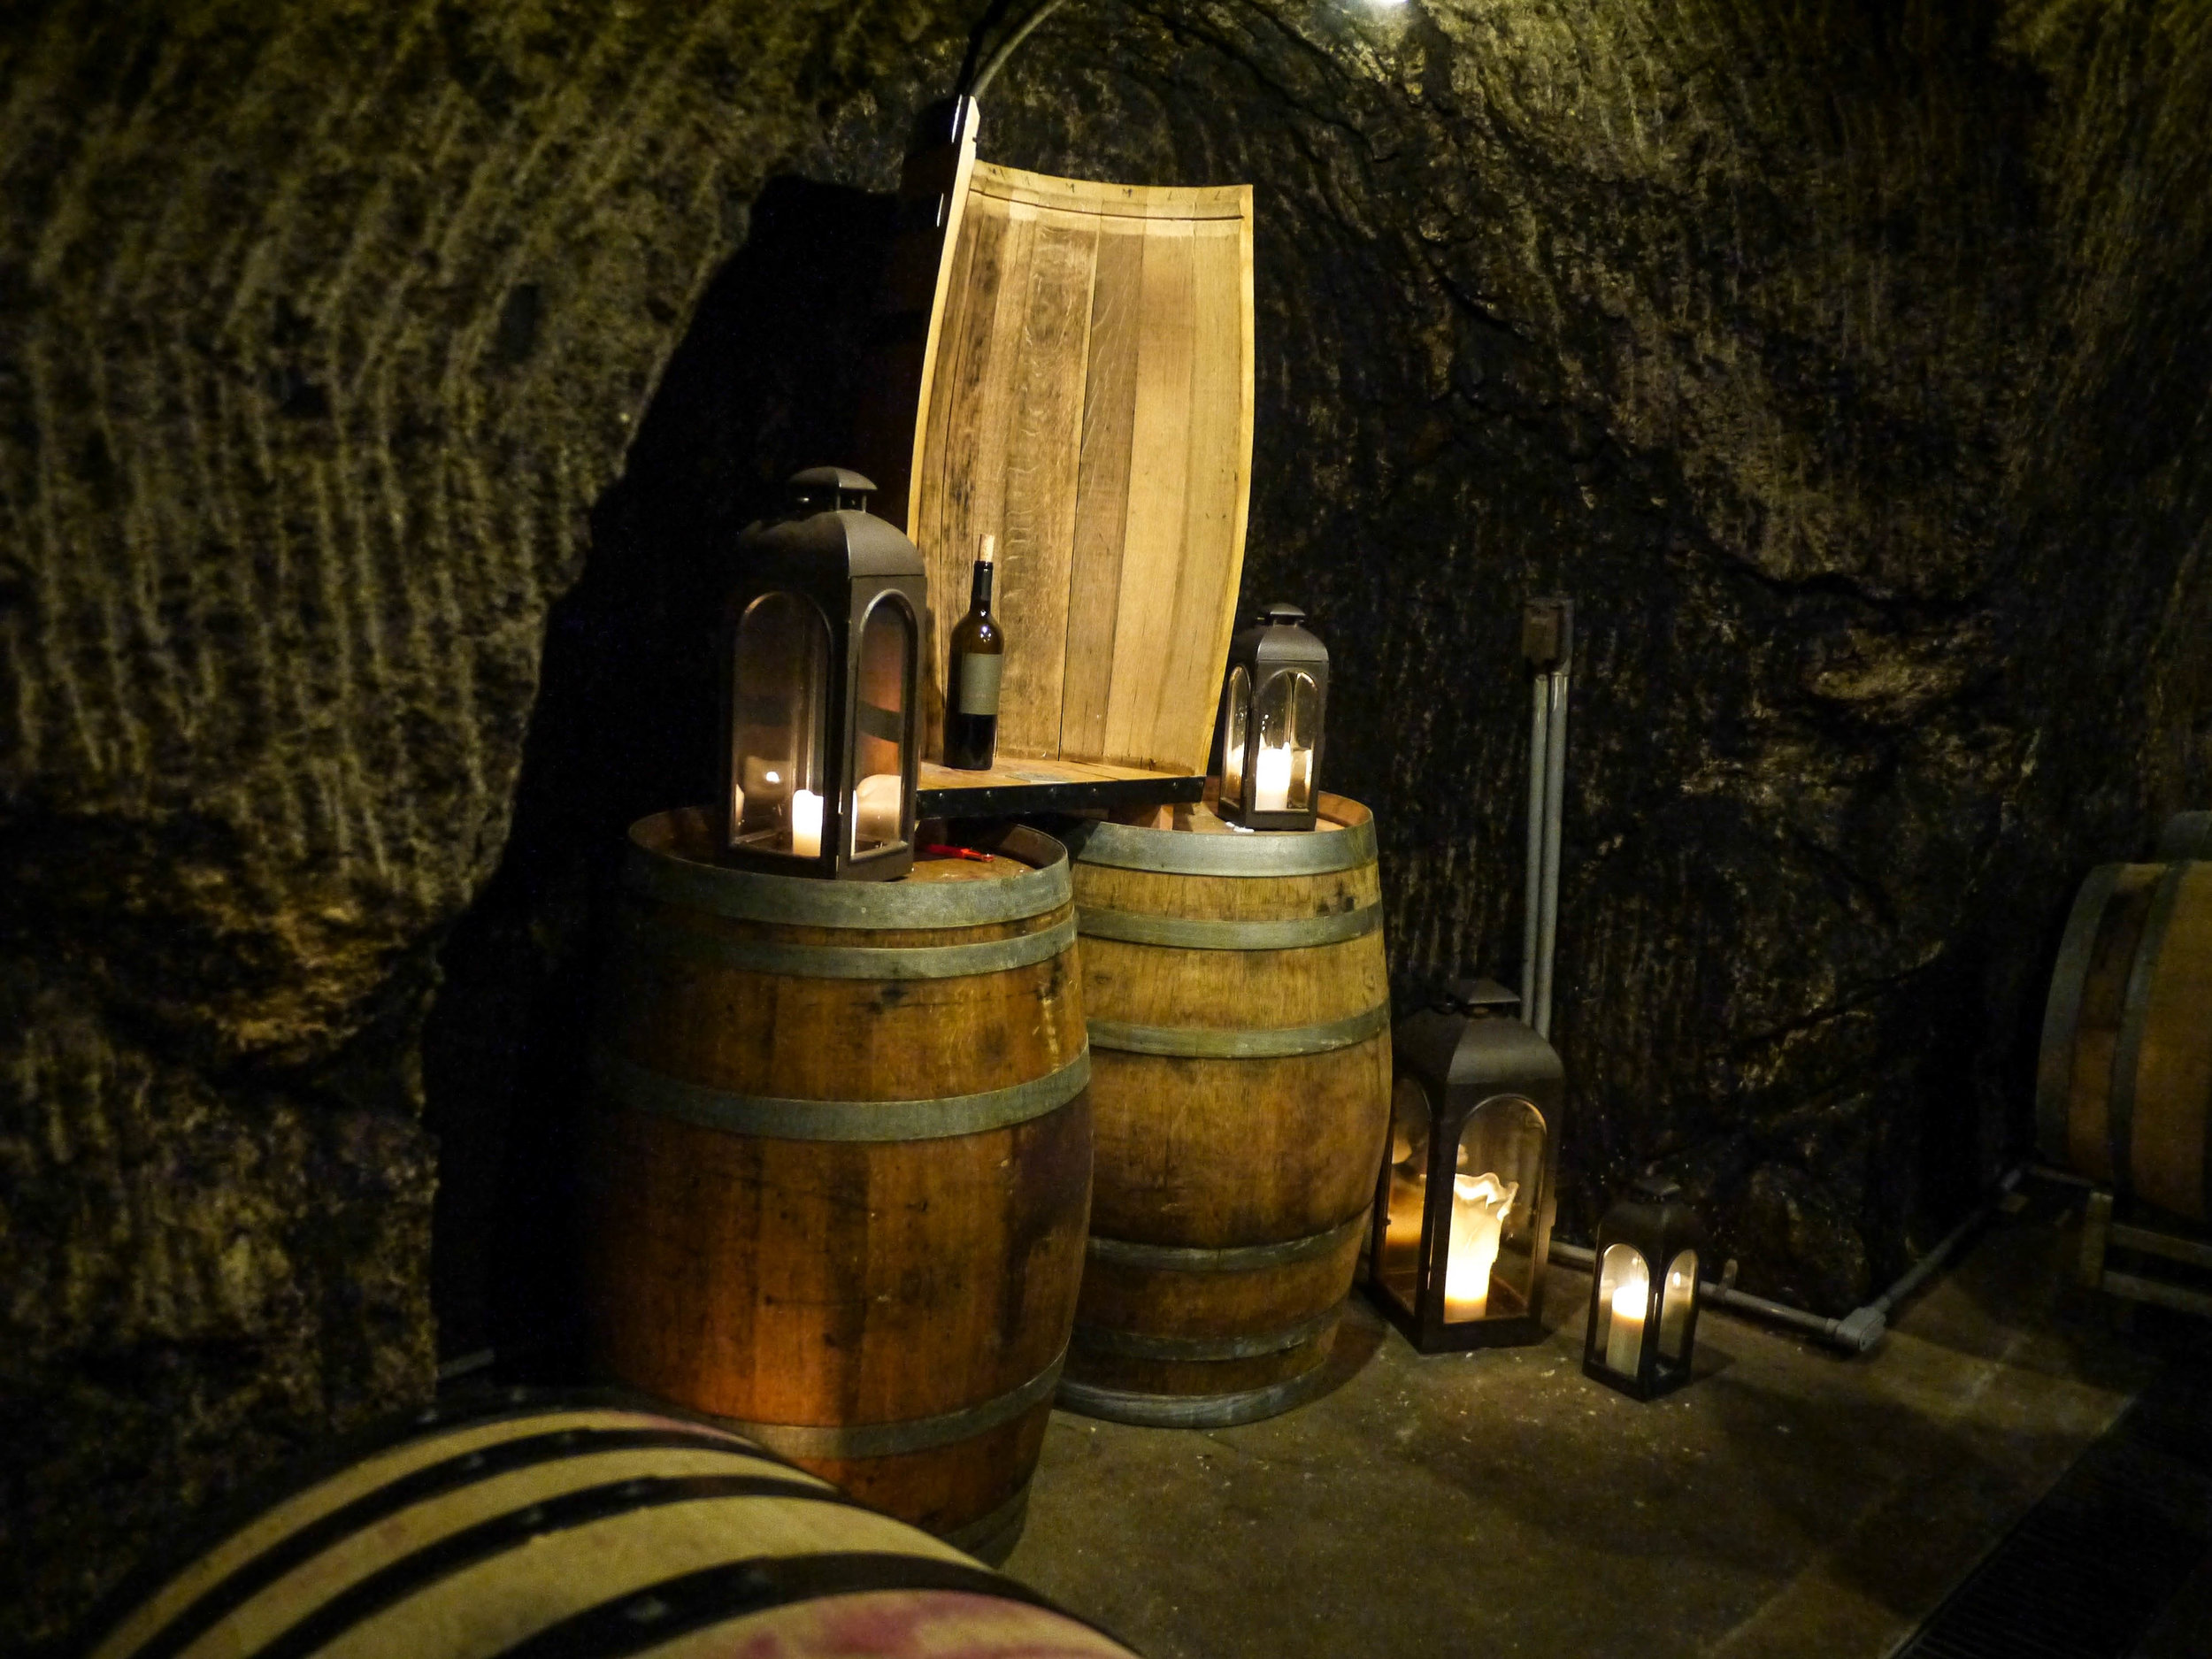 And red in their wine cave.